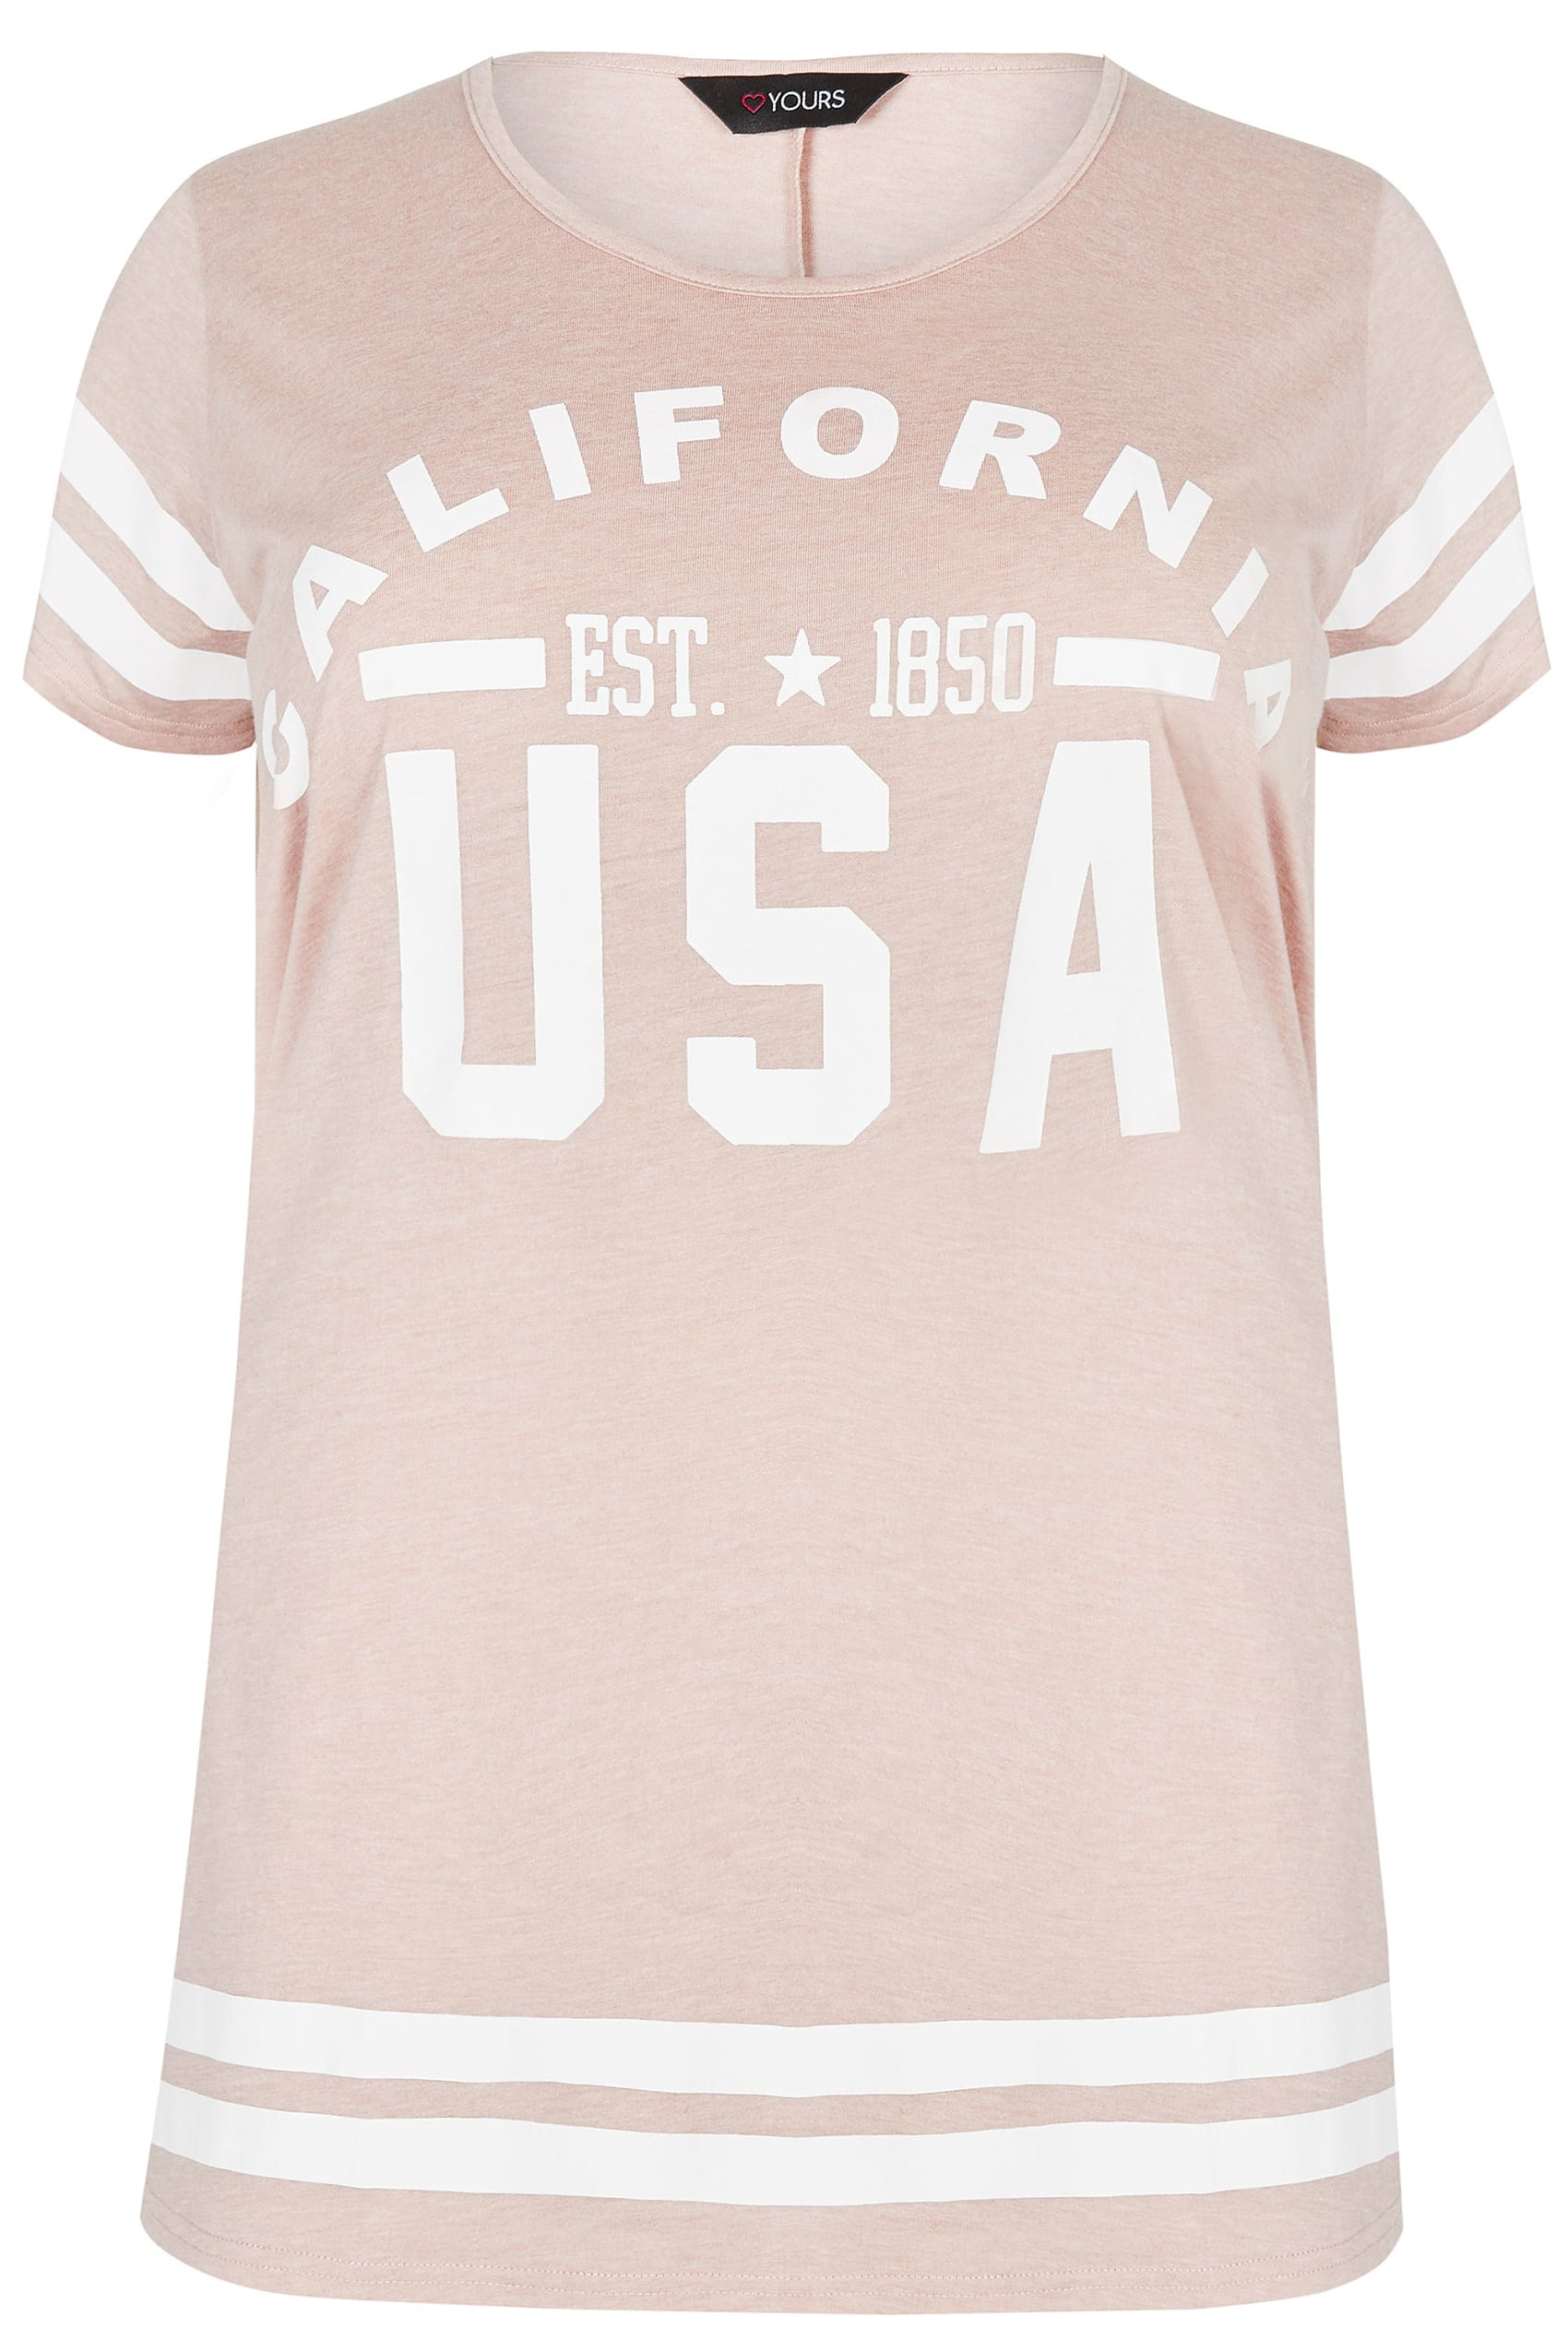 california privacy policy template - vintage roze t shirt met california slogan maten 44 64